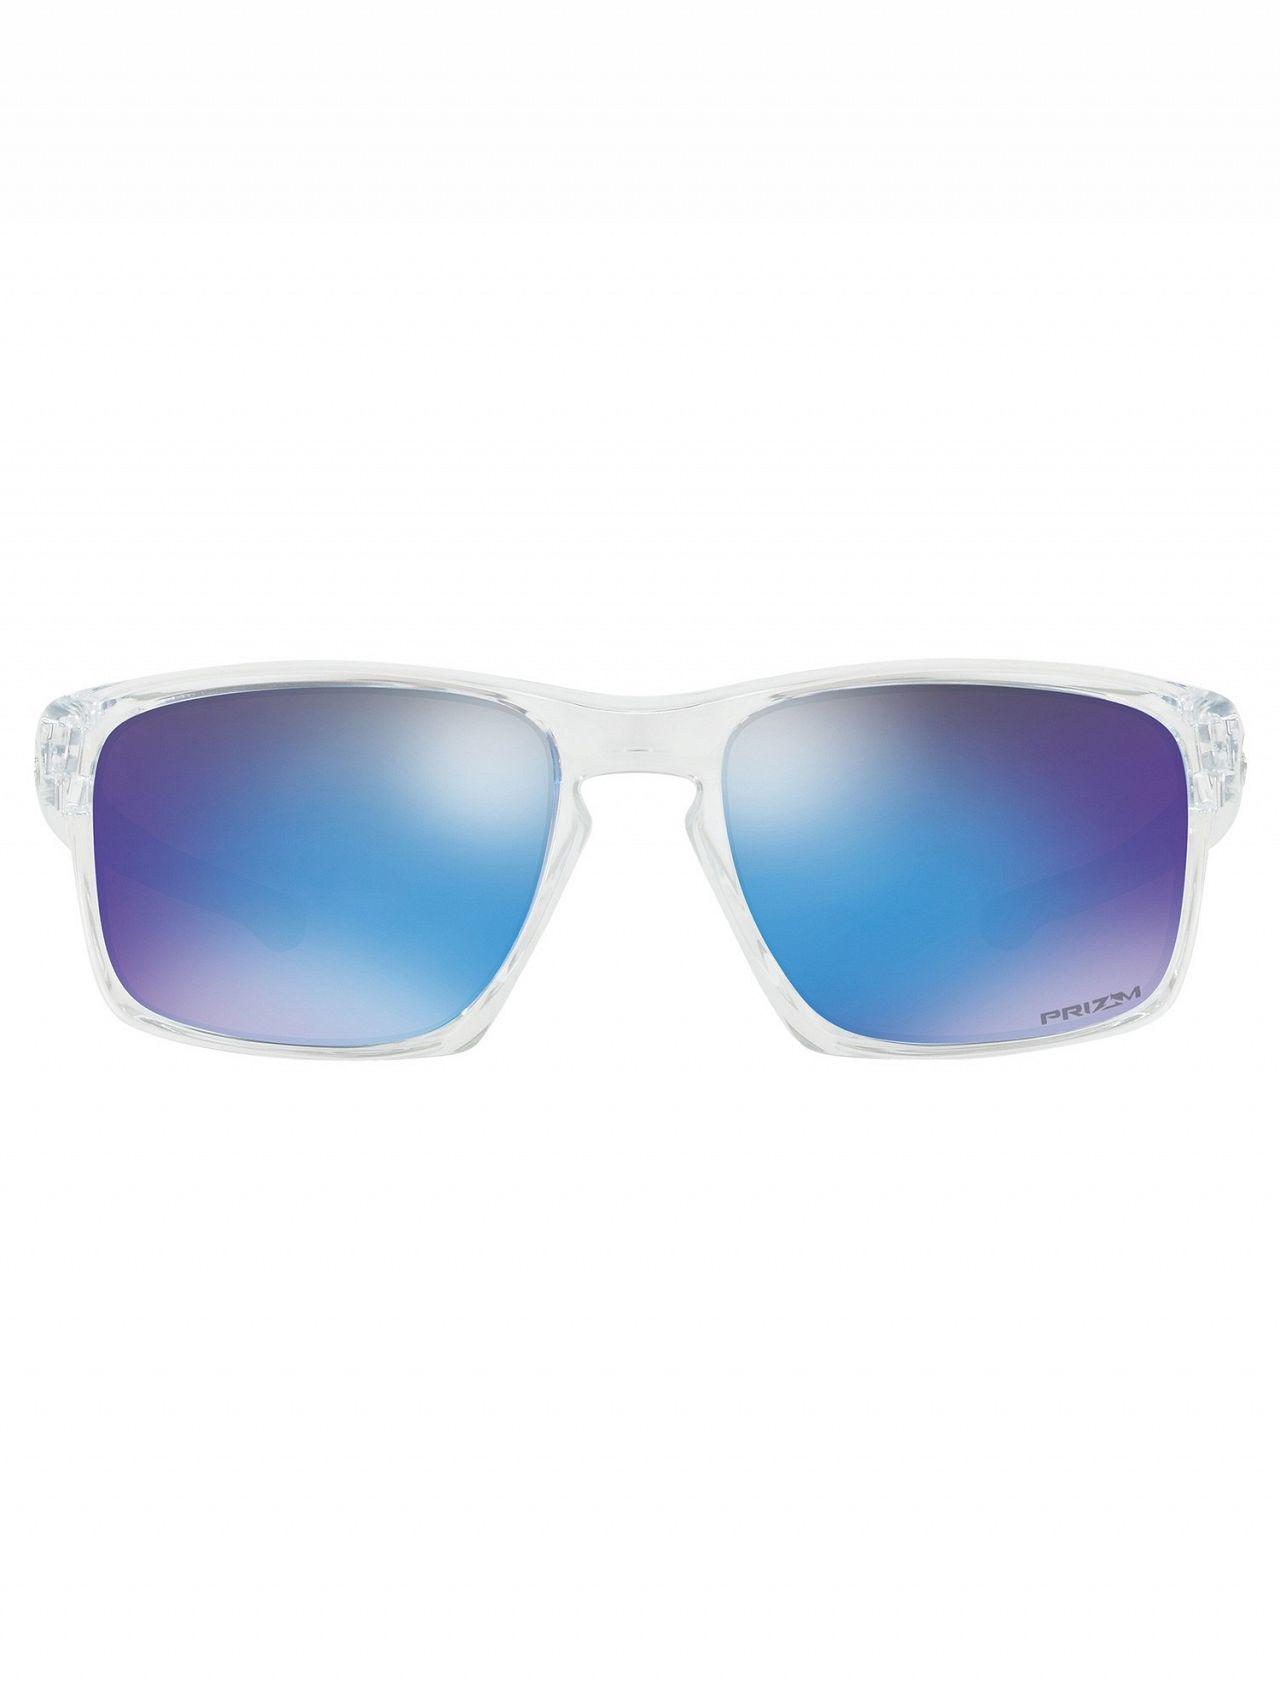 prizm lunettes path blanc radar oakley polished polis iridium sunglasses ev white sapphire